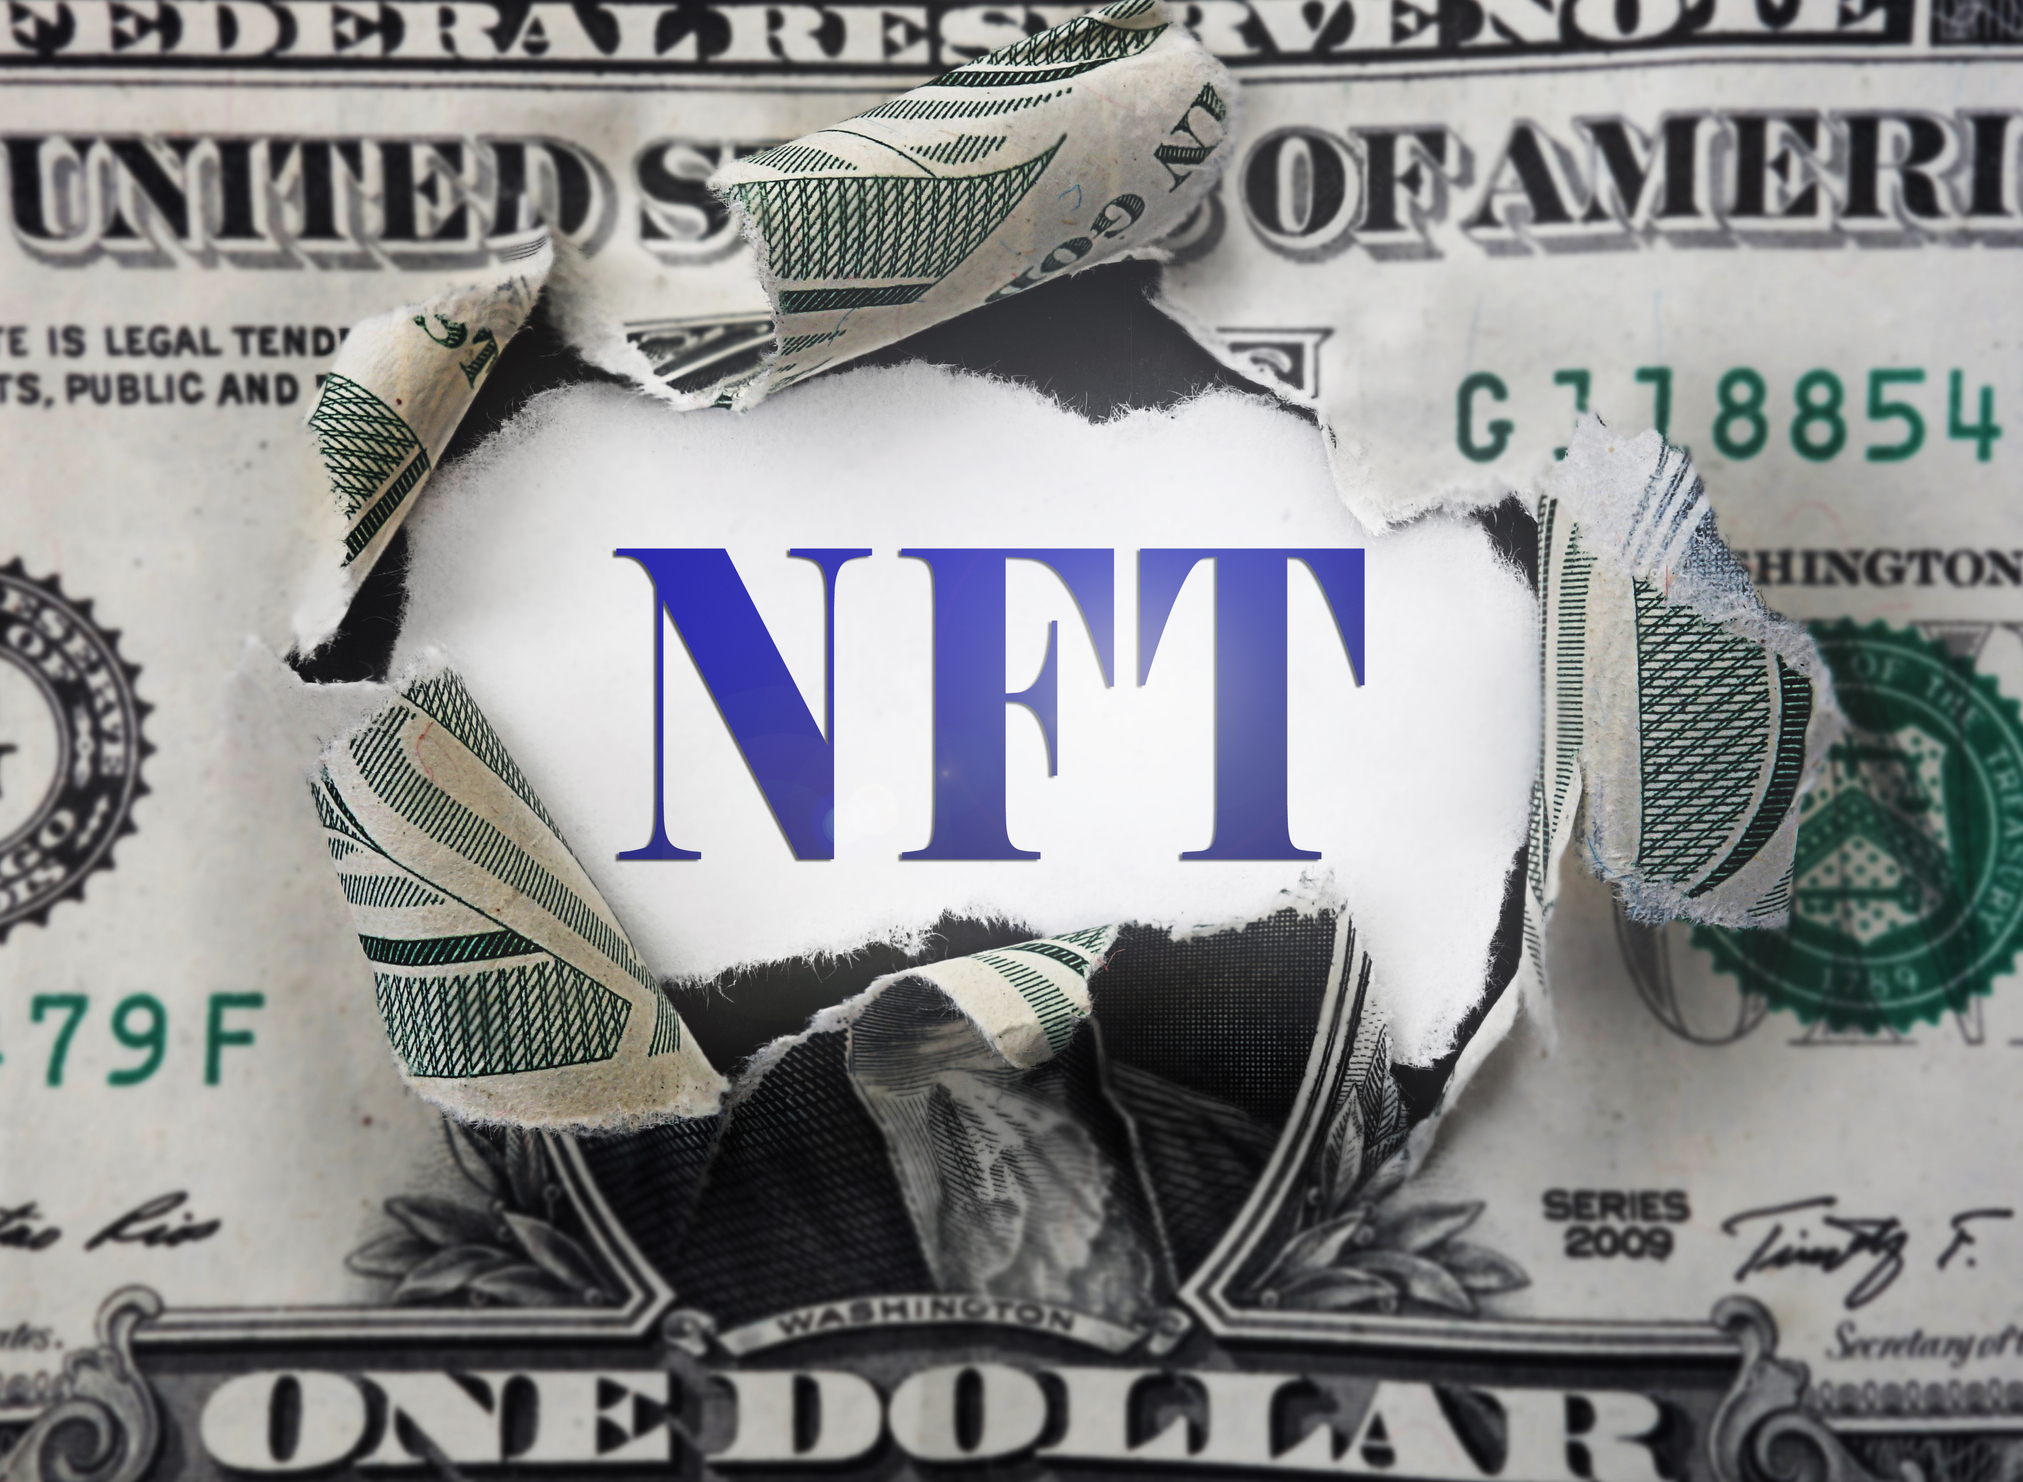 NFT and sales tax